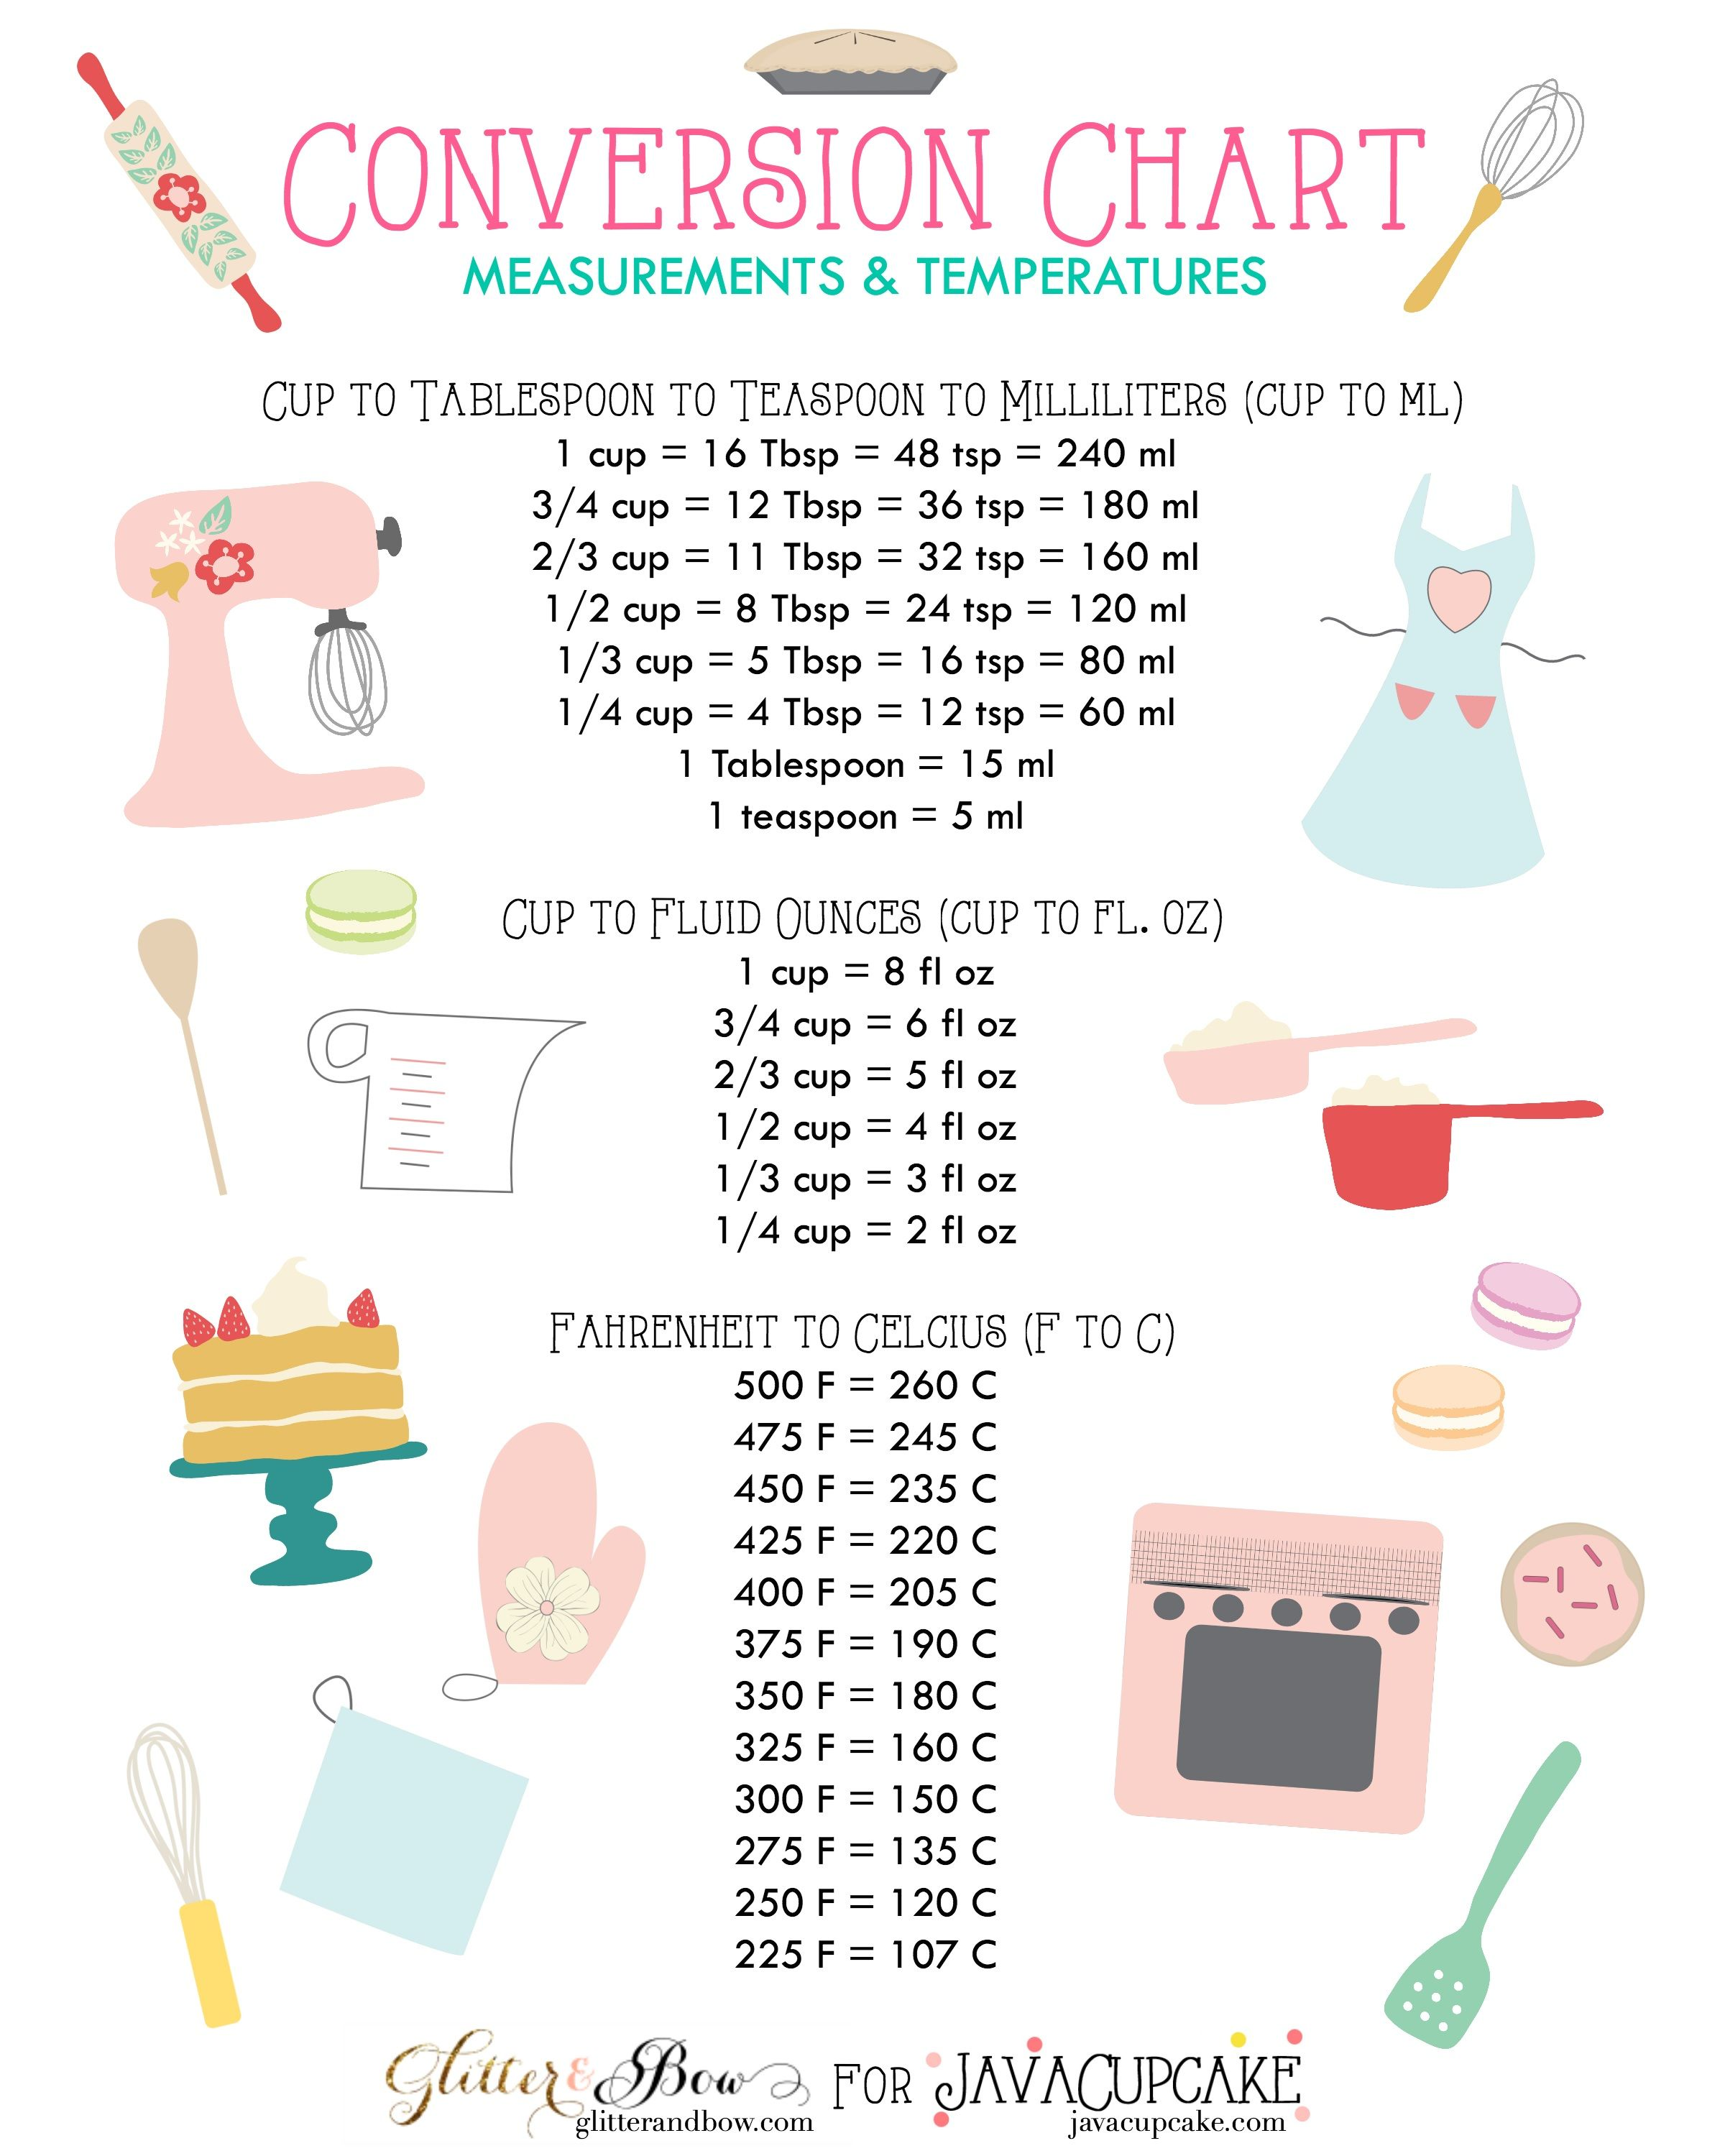 Pin by alisa terry on baking cooking pinterest chart measurements temperatures conversion charts kitchen tips nvjuhfo Images